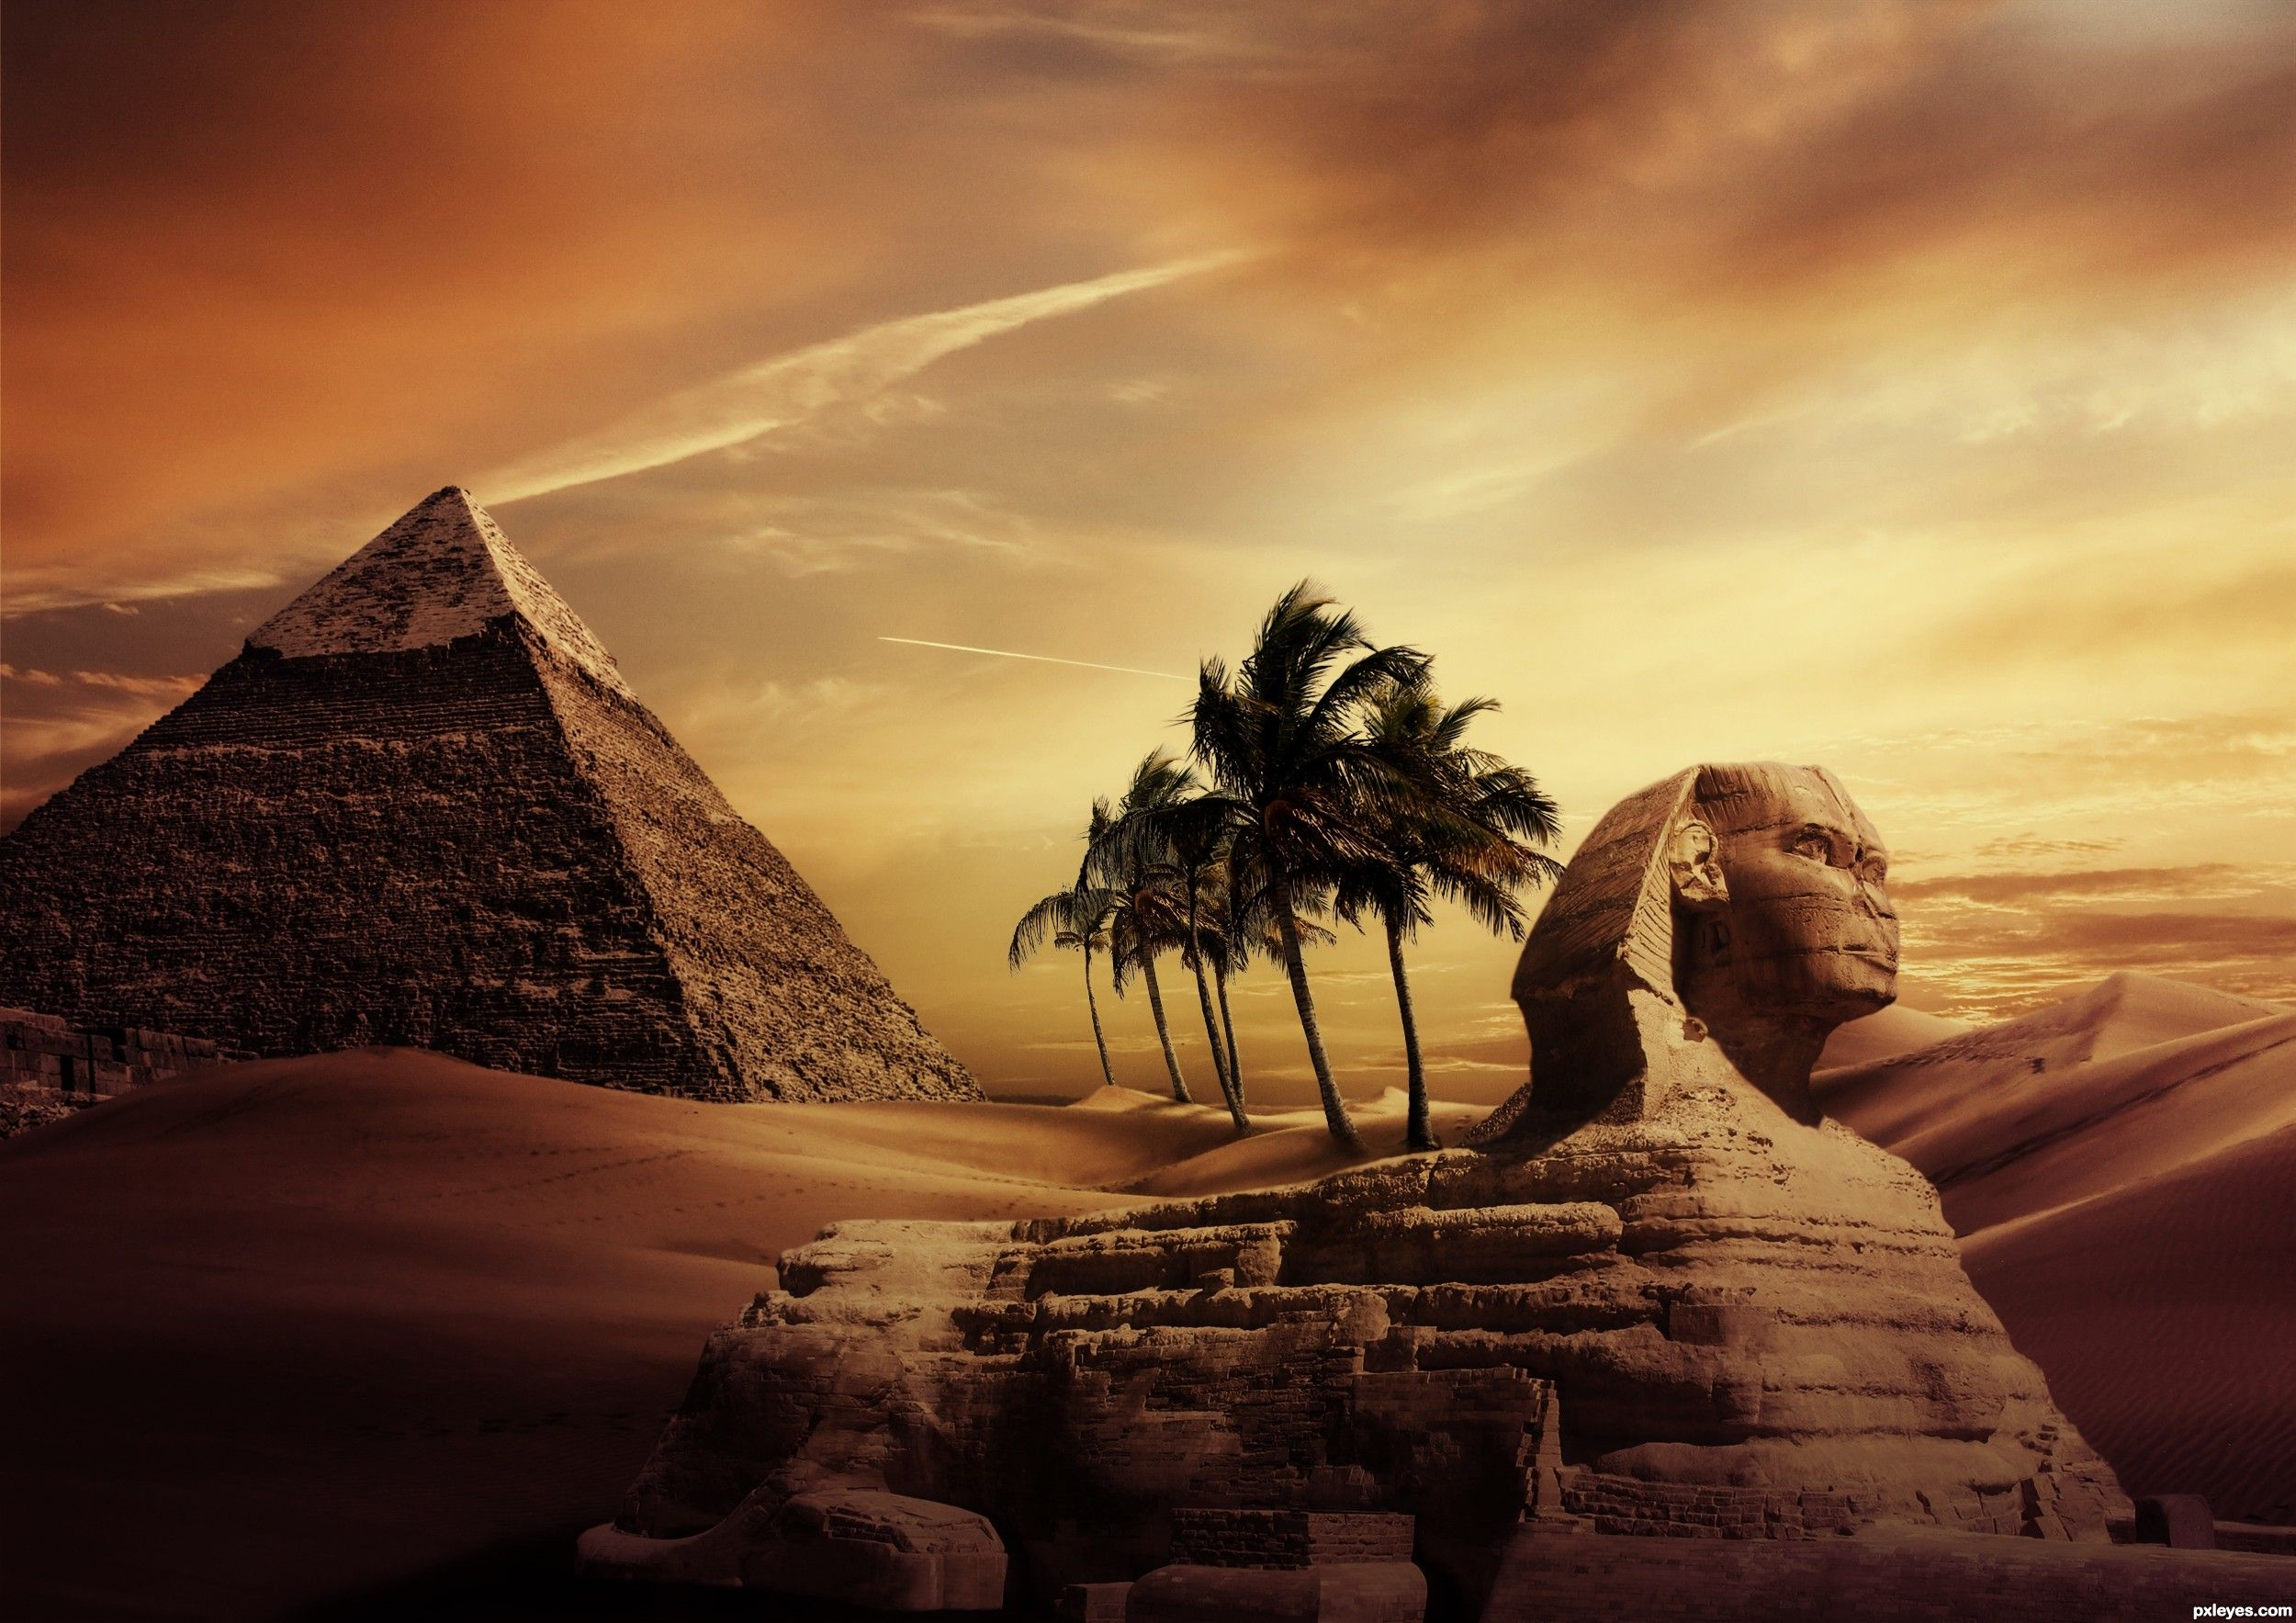 the amazing pyramids in egypt essay The lonely pyramids of giza: egyptian tourism's decline the recent coptic church bombings could further damage the already crippled tourism sector in the country.